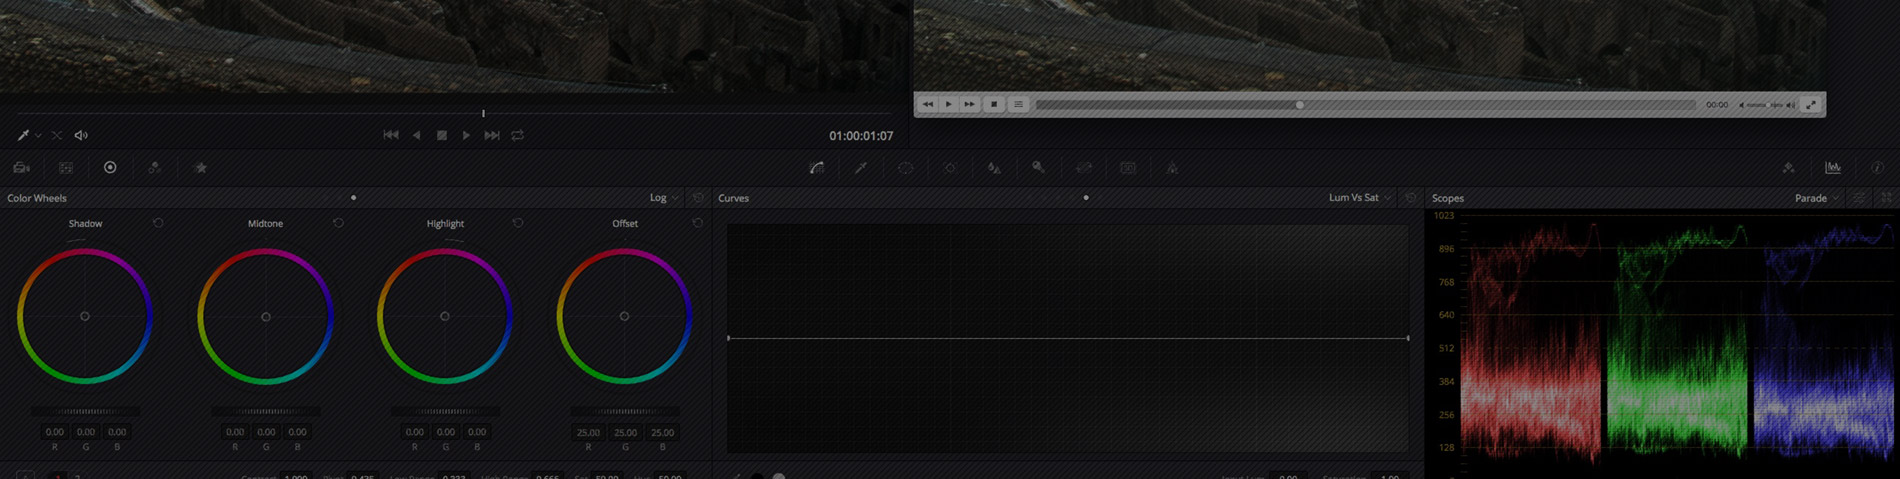 Contrast issues in DaVinci Resolve on Macs